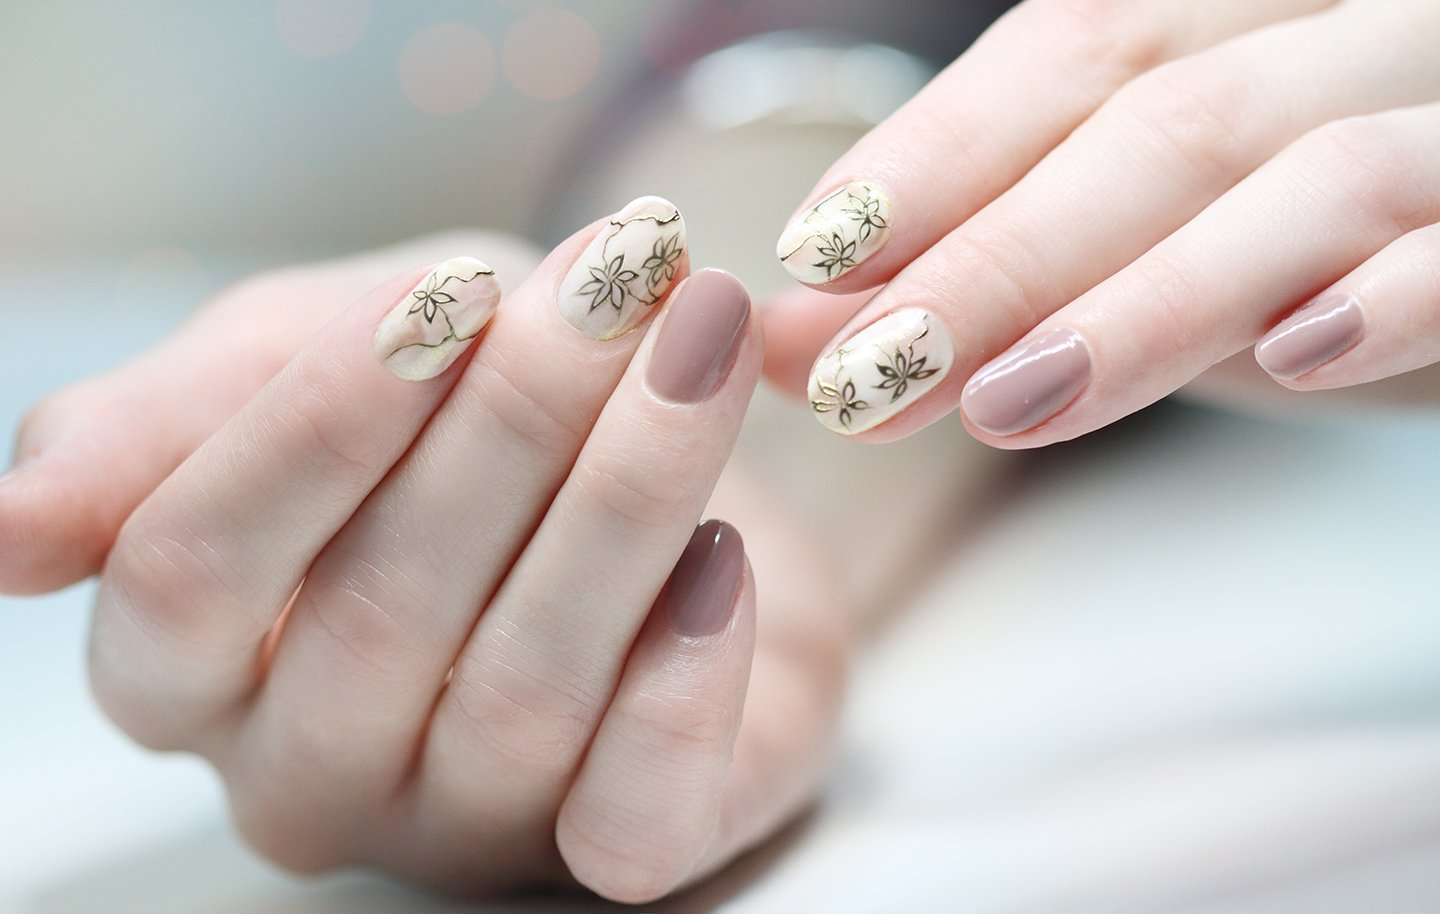 mani con unghie beige e decorate